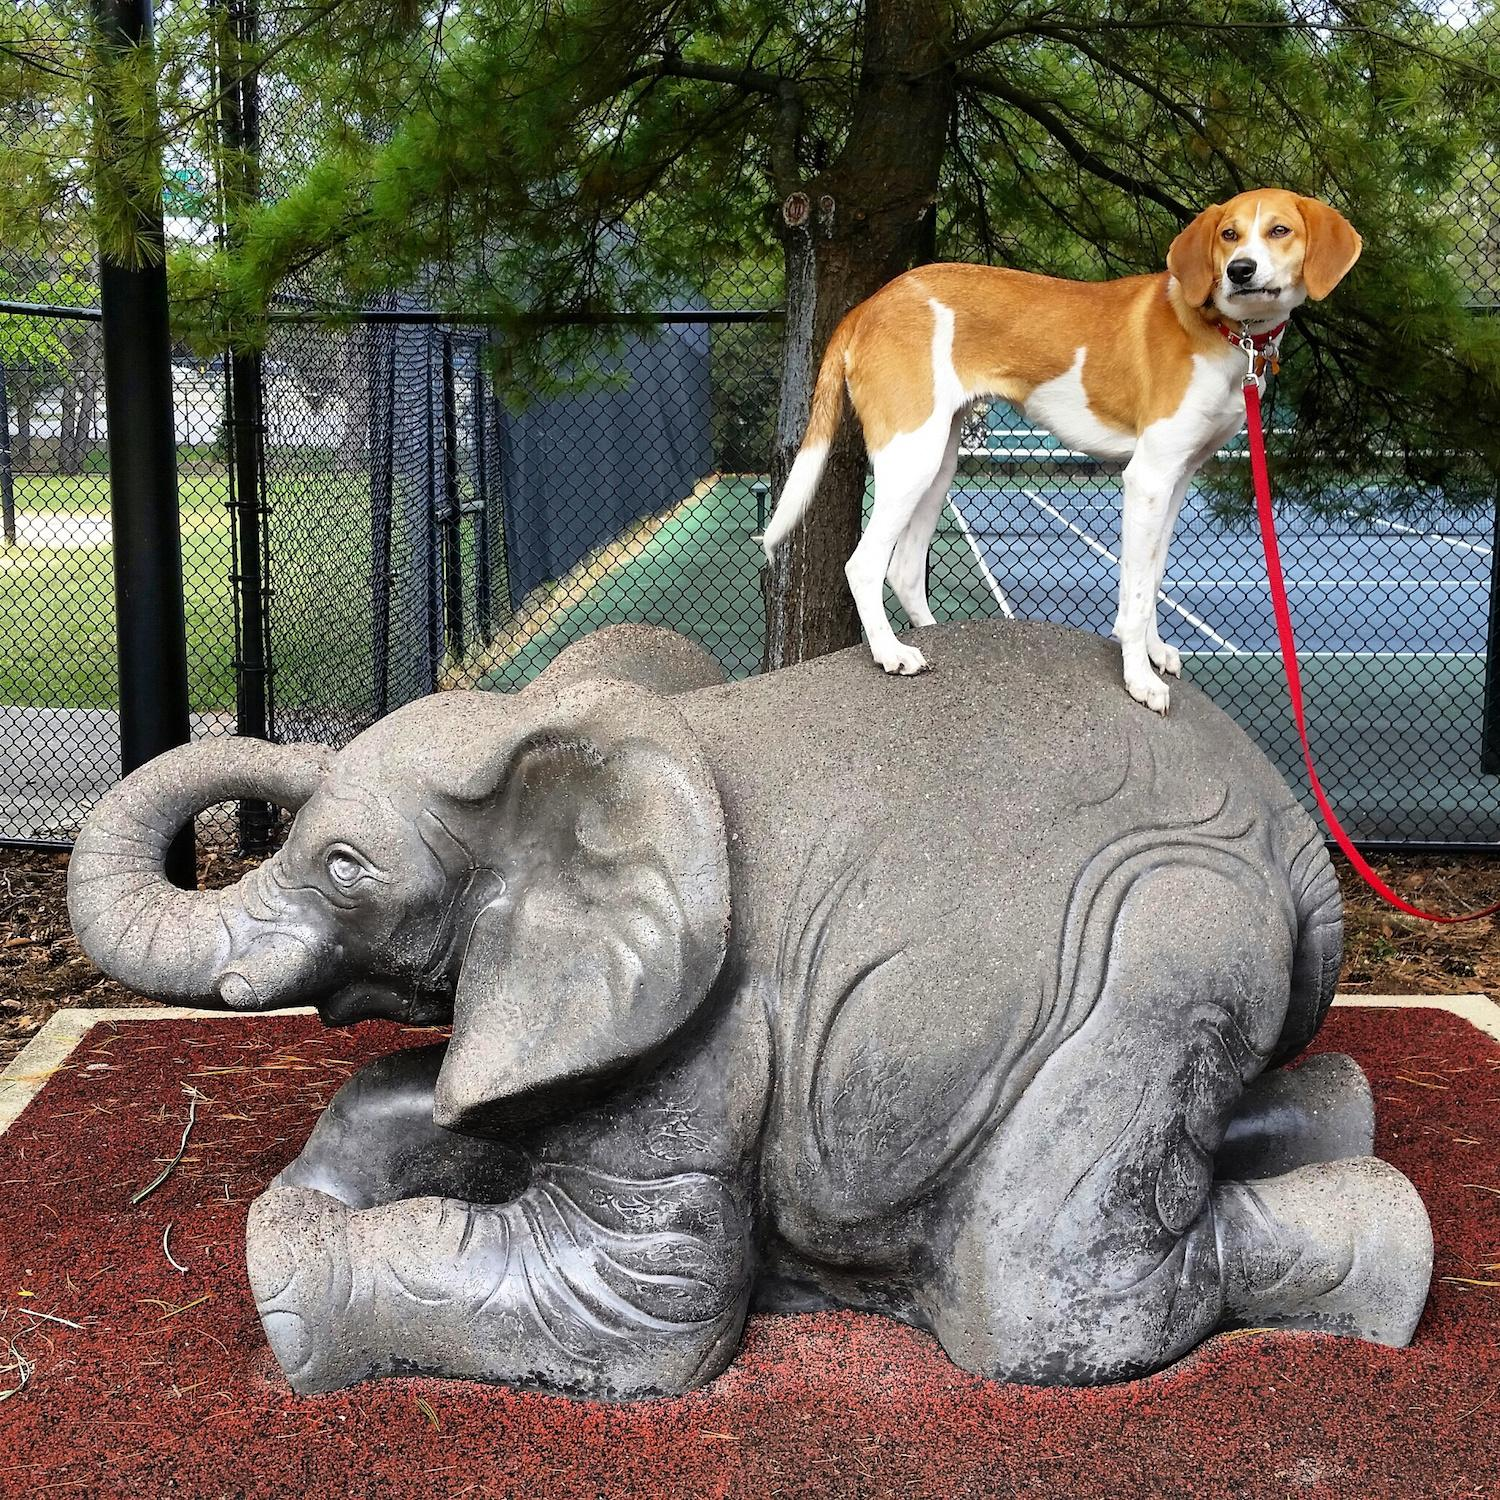 LOCATION: Sawyer Point / Mollie is a local Instagram celebrity. Famous for posing on fire hydrants in front of ArtWorks murals (and other Cincy landmarks), this hound dog has officially stolen our hearts. You can follow her adventures on Instagram @molliethehounddoggie / Image: Patti Mossey (Mollie's owner and #1 fan) // Published: 5.1.18